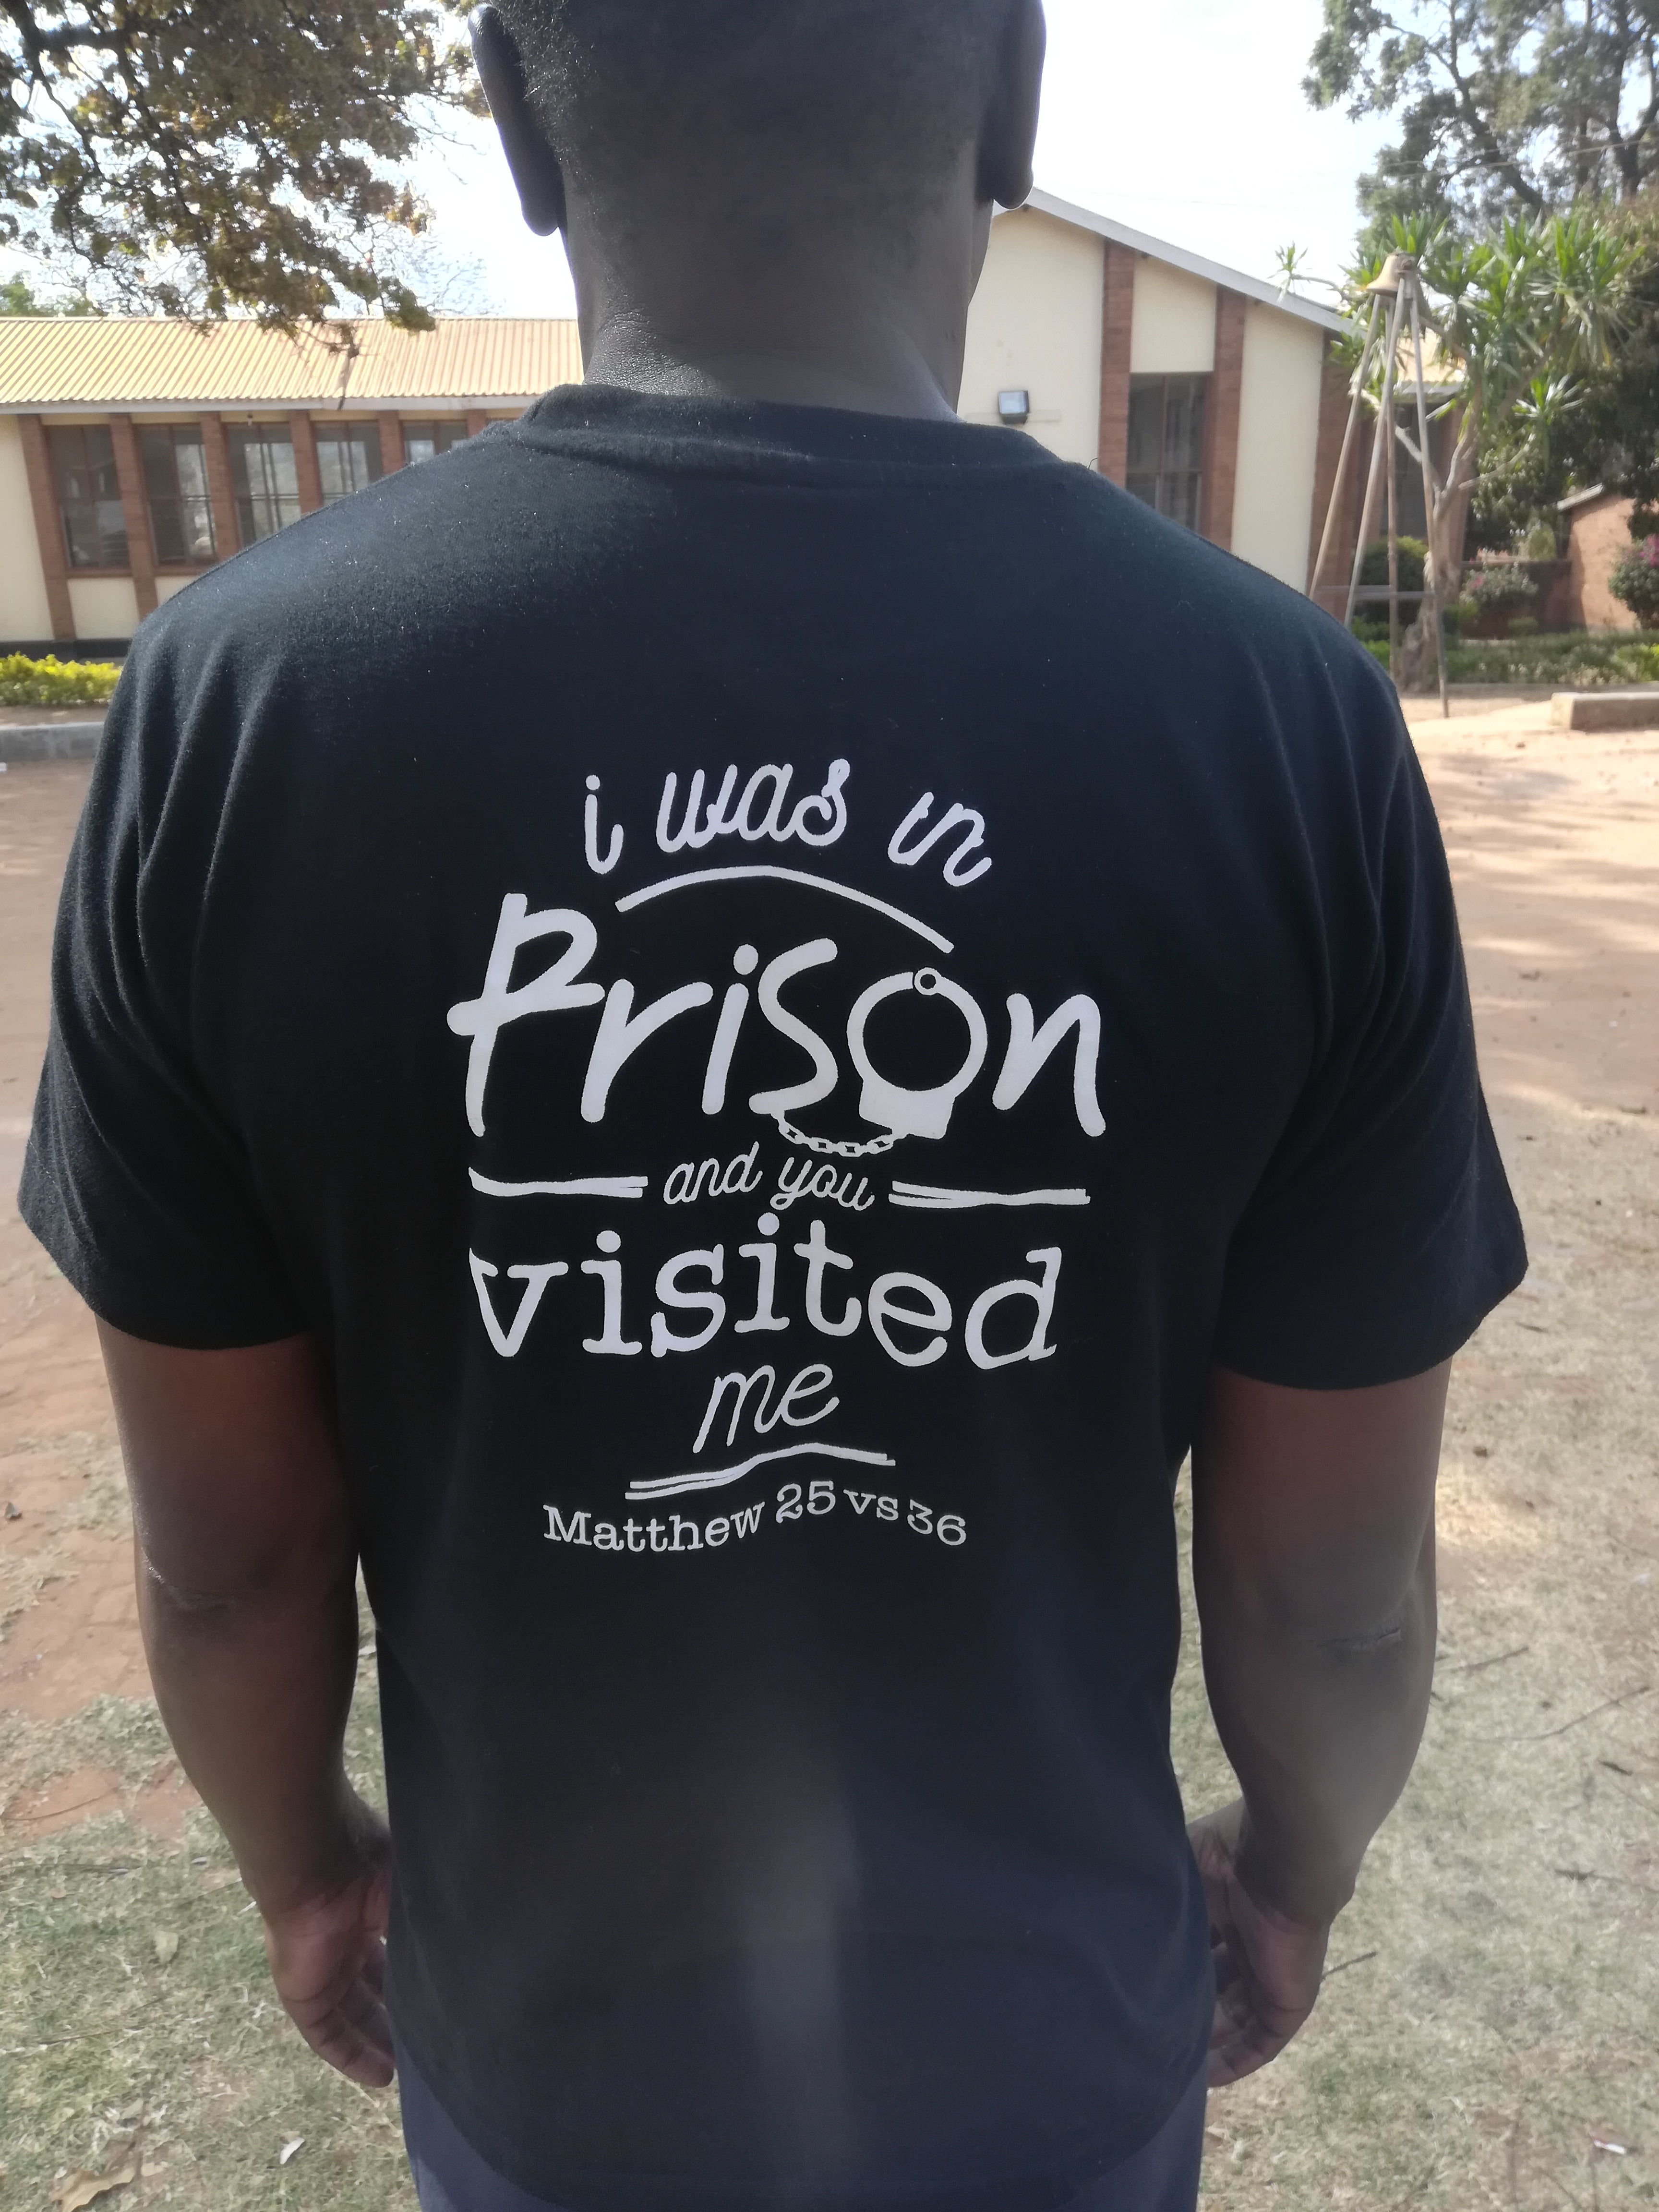 CCAP Nkhoma Synod Prison Ministry theme verse.